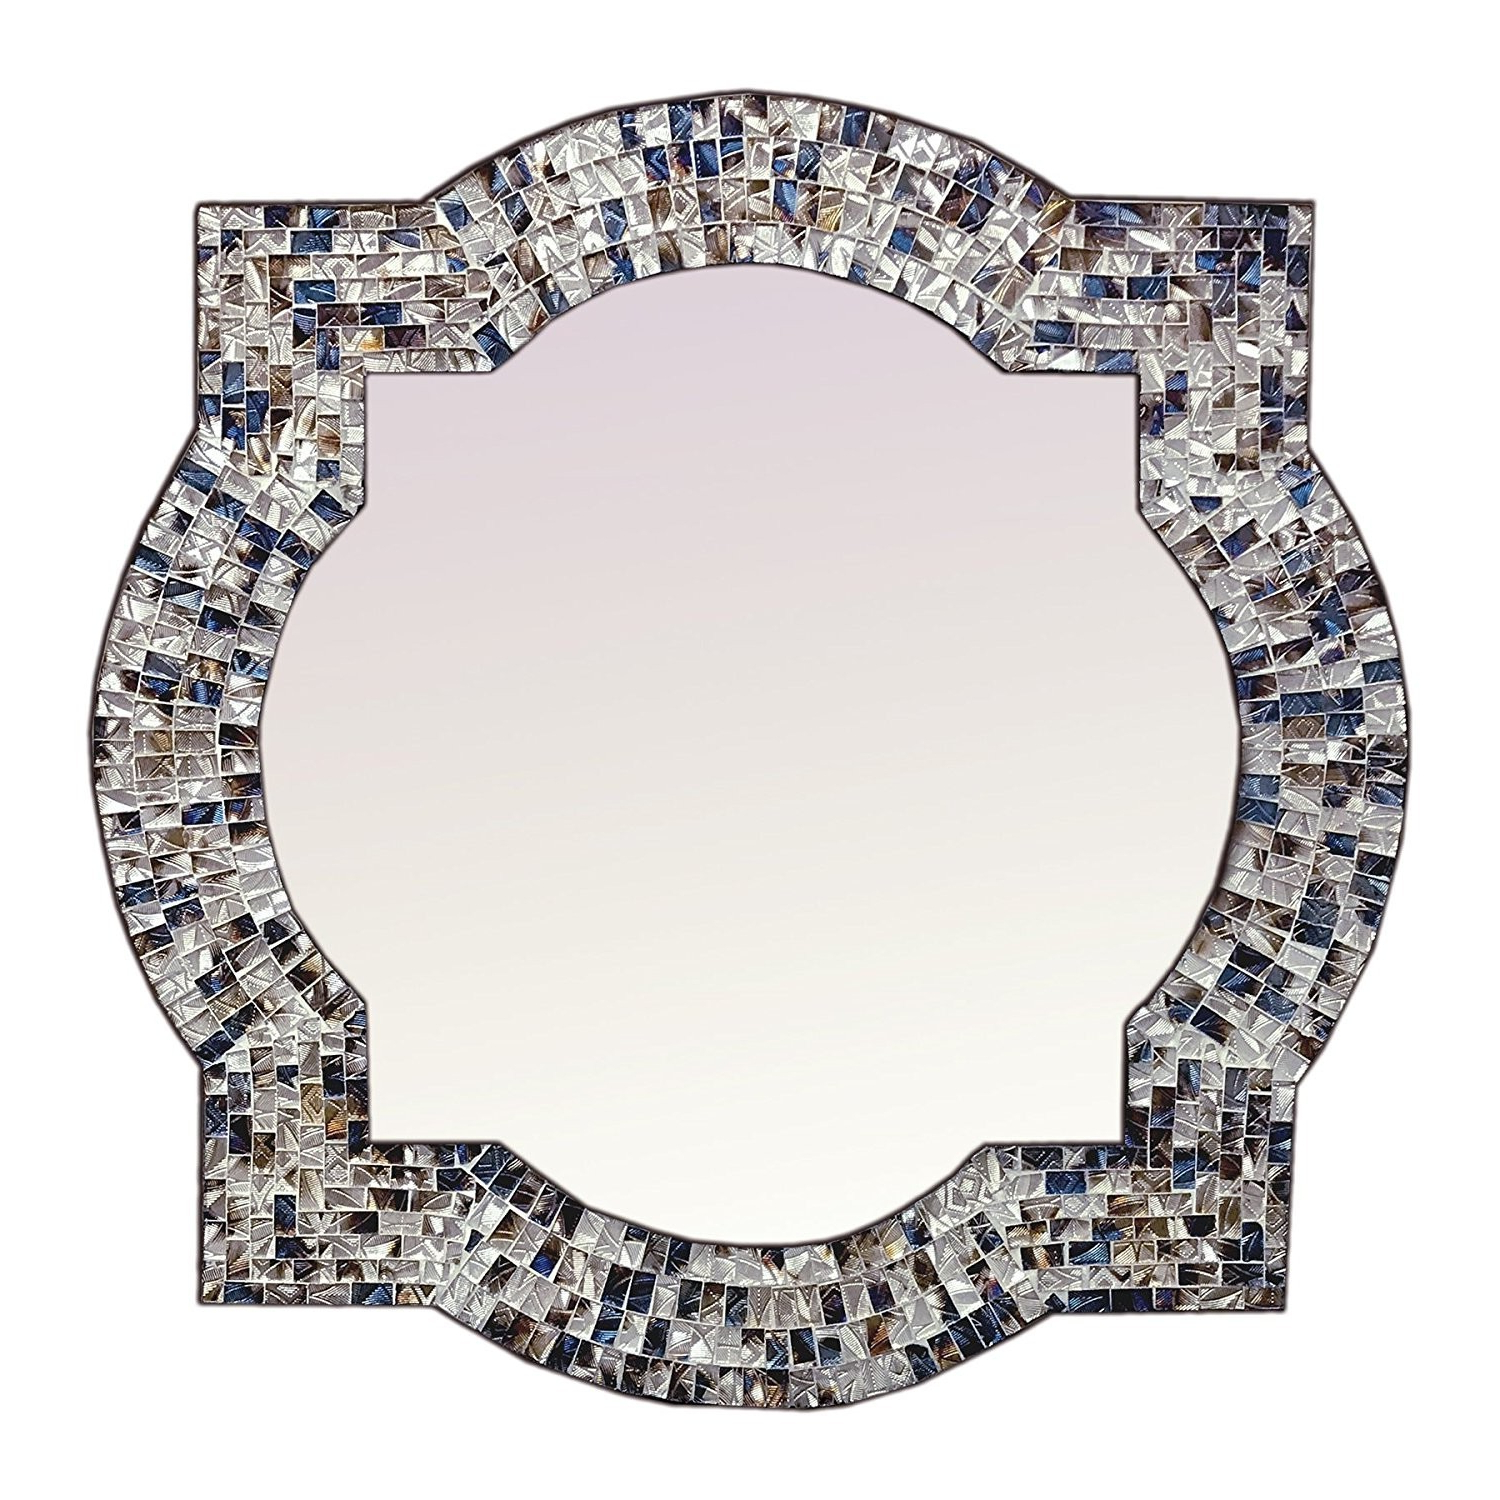 """Widely Used Mosaic Framed Wall Mirrors Intended For Andalusian Quatrefoil Mirror, Lindaraja Designer Mosaic Glass Framed Wall Mirror, 24""""x24"""" Colorful Wall Mirror (Multi Silver) (View 16 of 20)"""